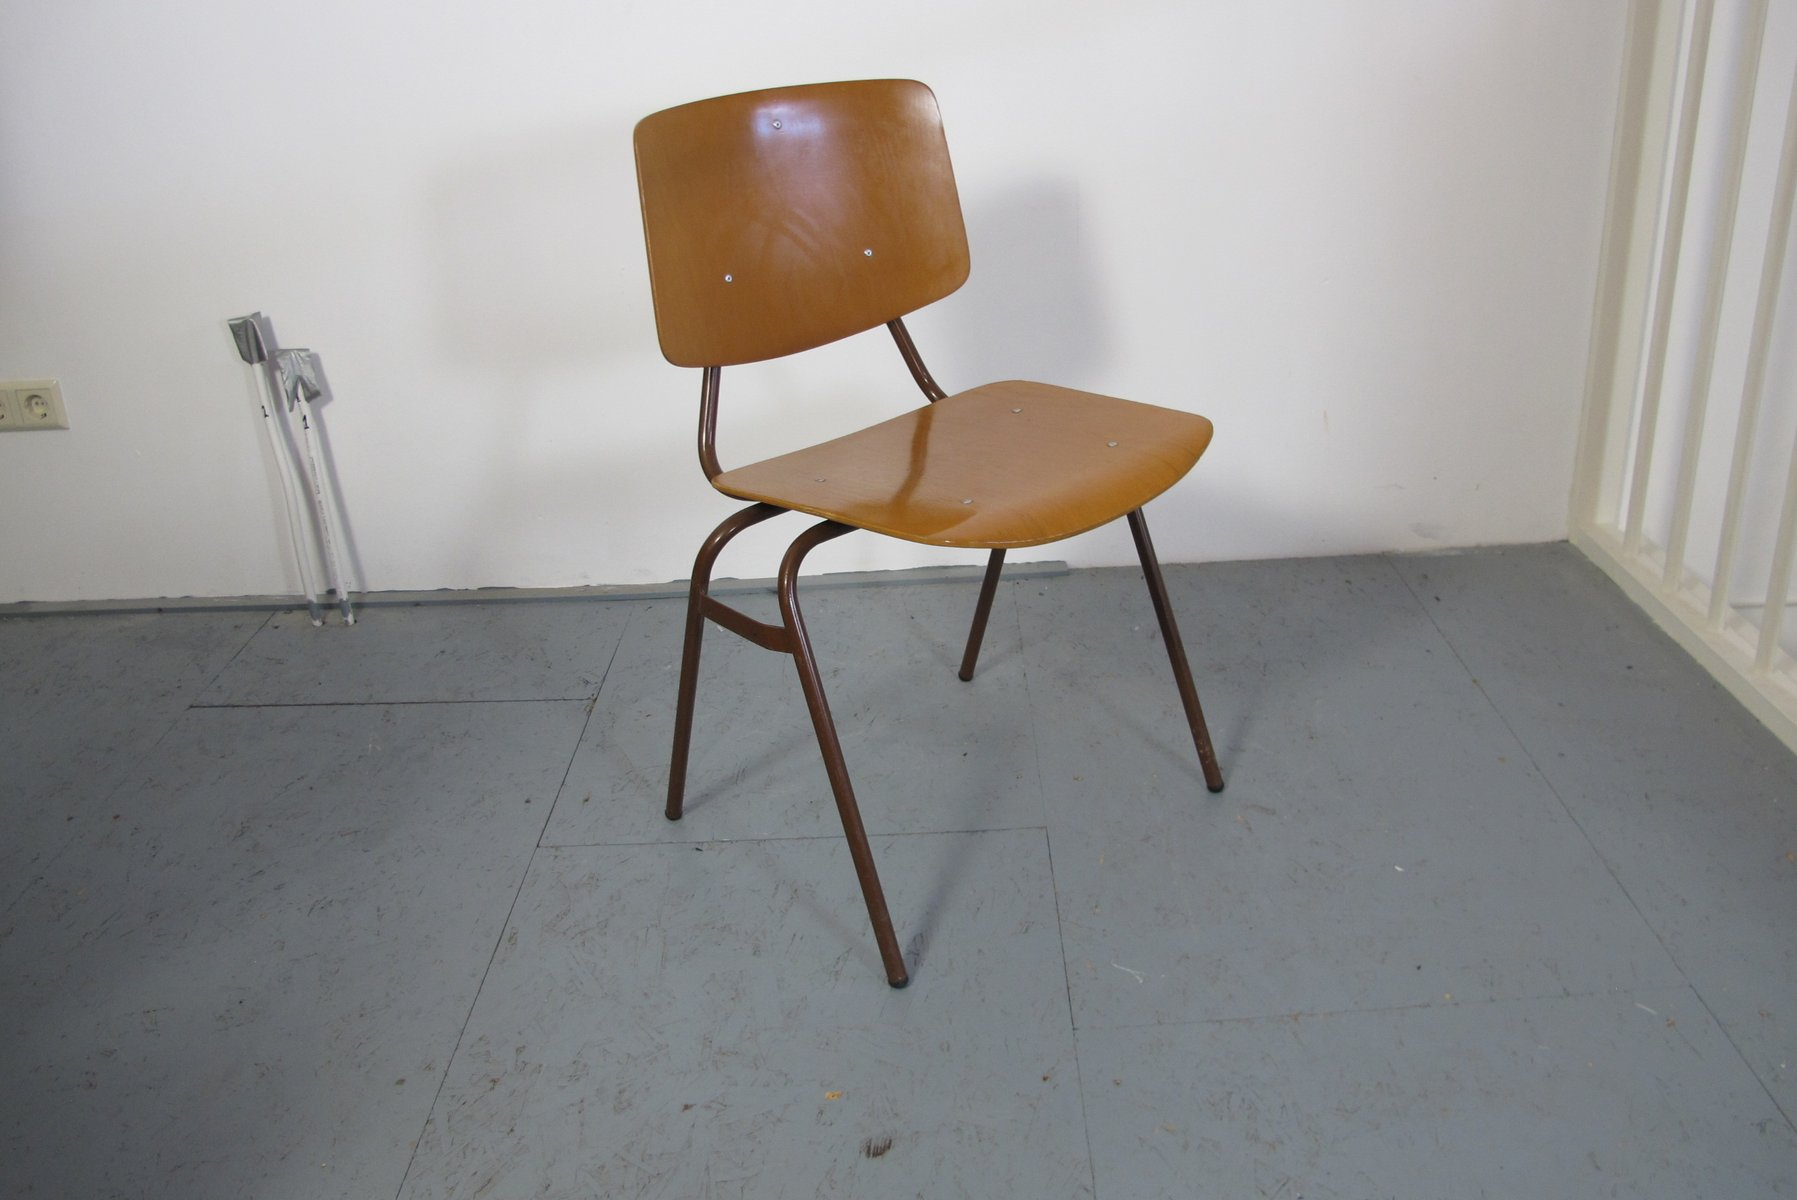 Vintage Industrial Chairs by Kho Liang Ie for Car Set of 4 for